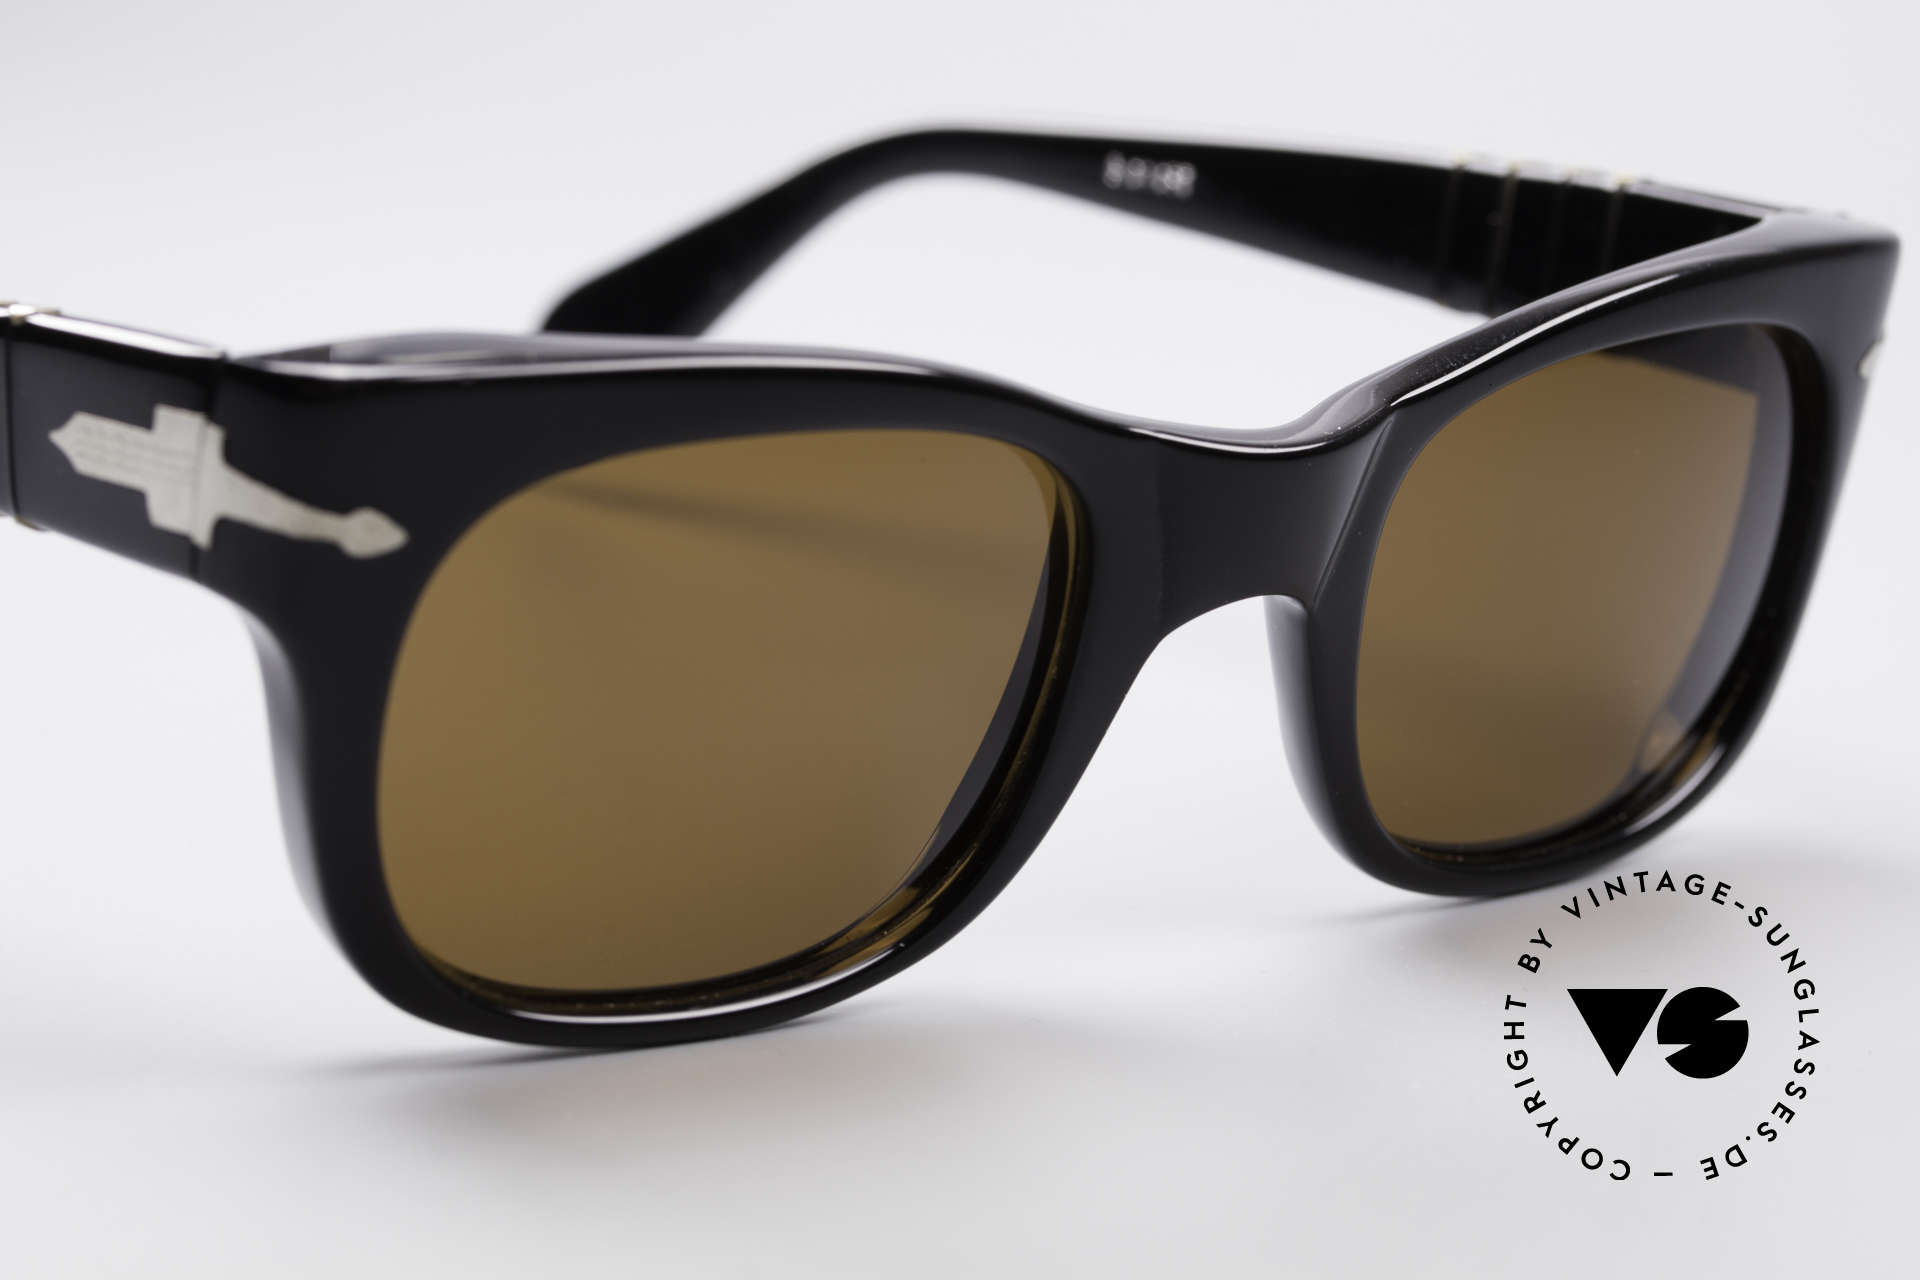 Persol 6201 Ratti Identic 69202 Ratti, mineral lenses with Persol logo for 100% UV protection!, Made for Men